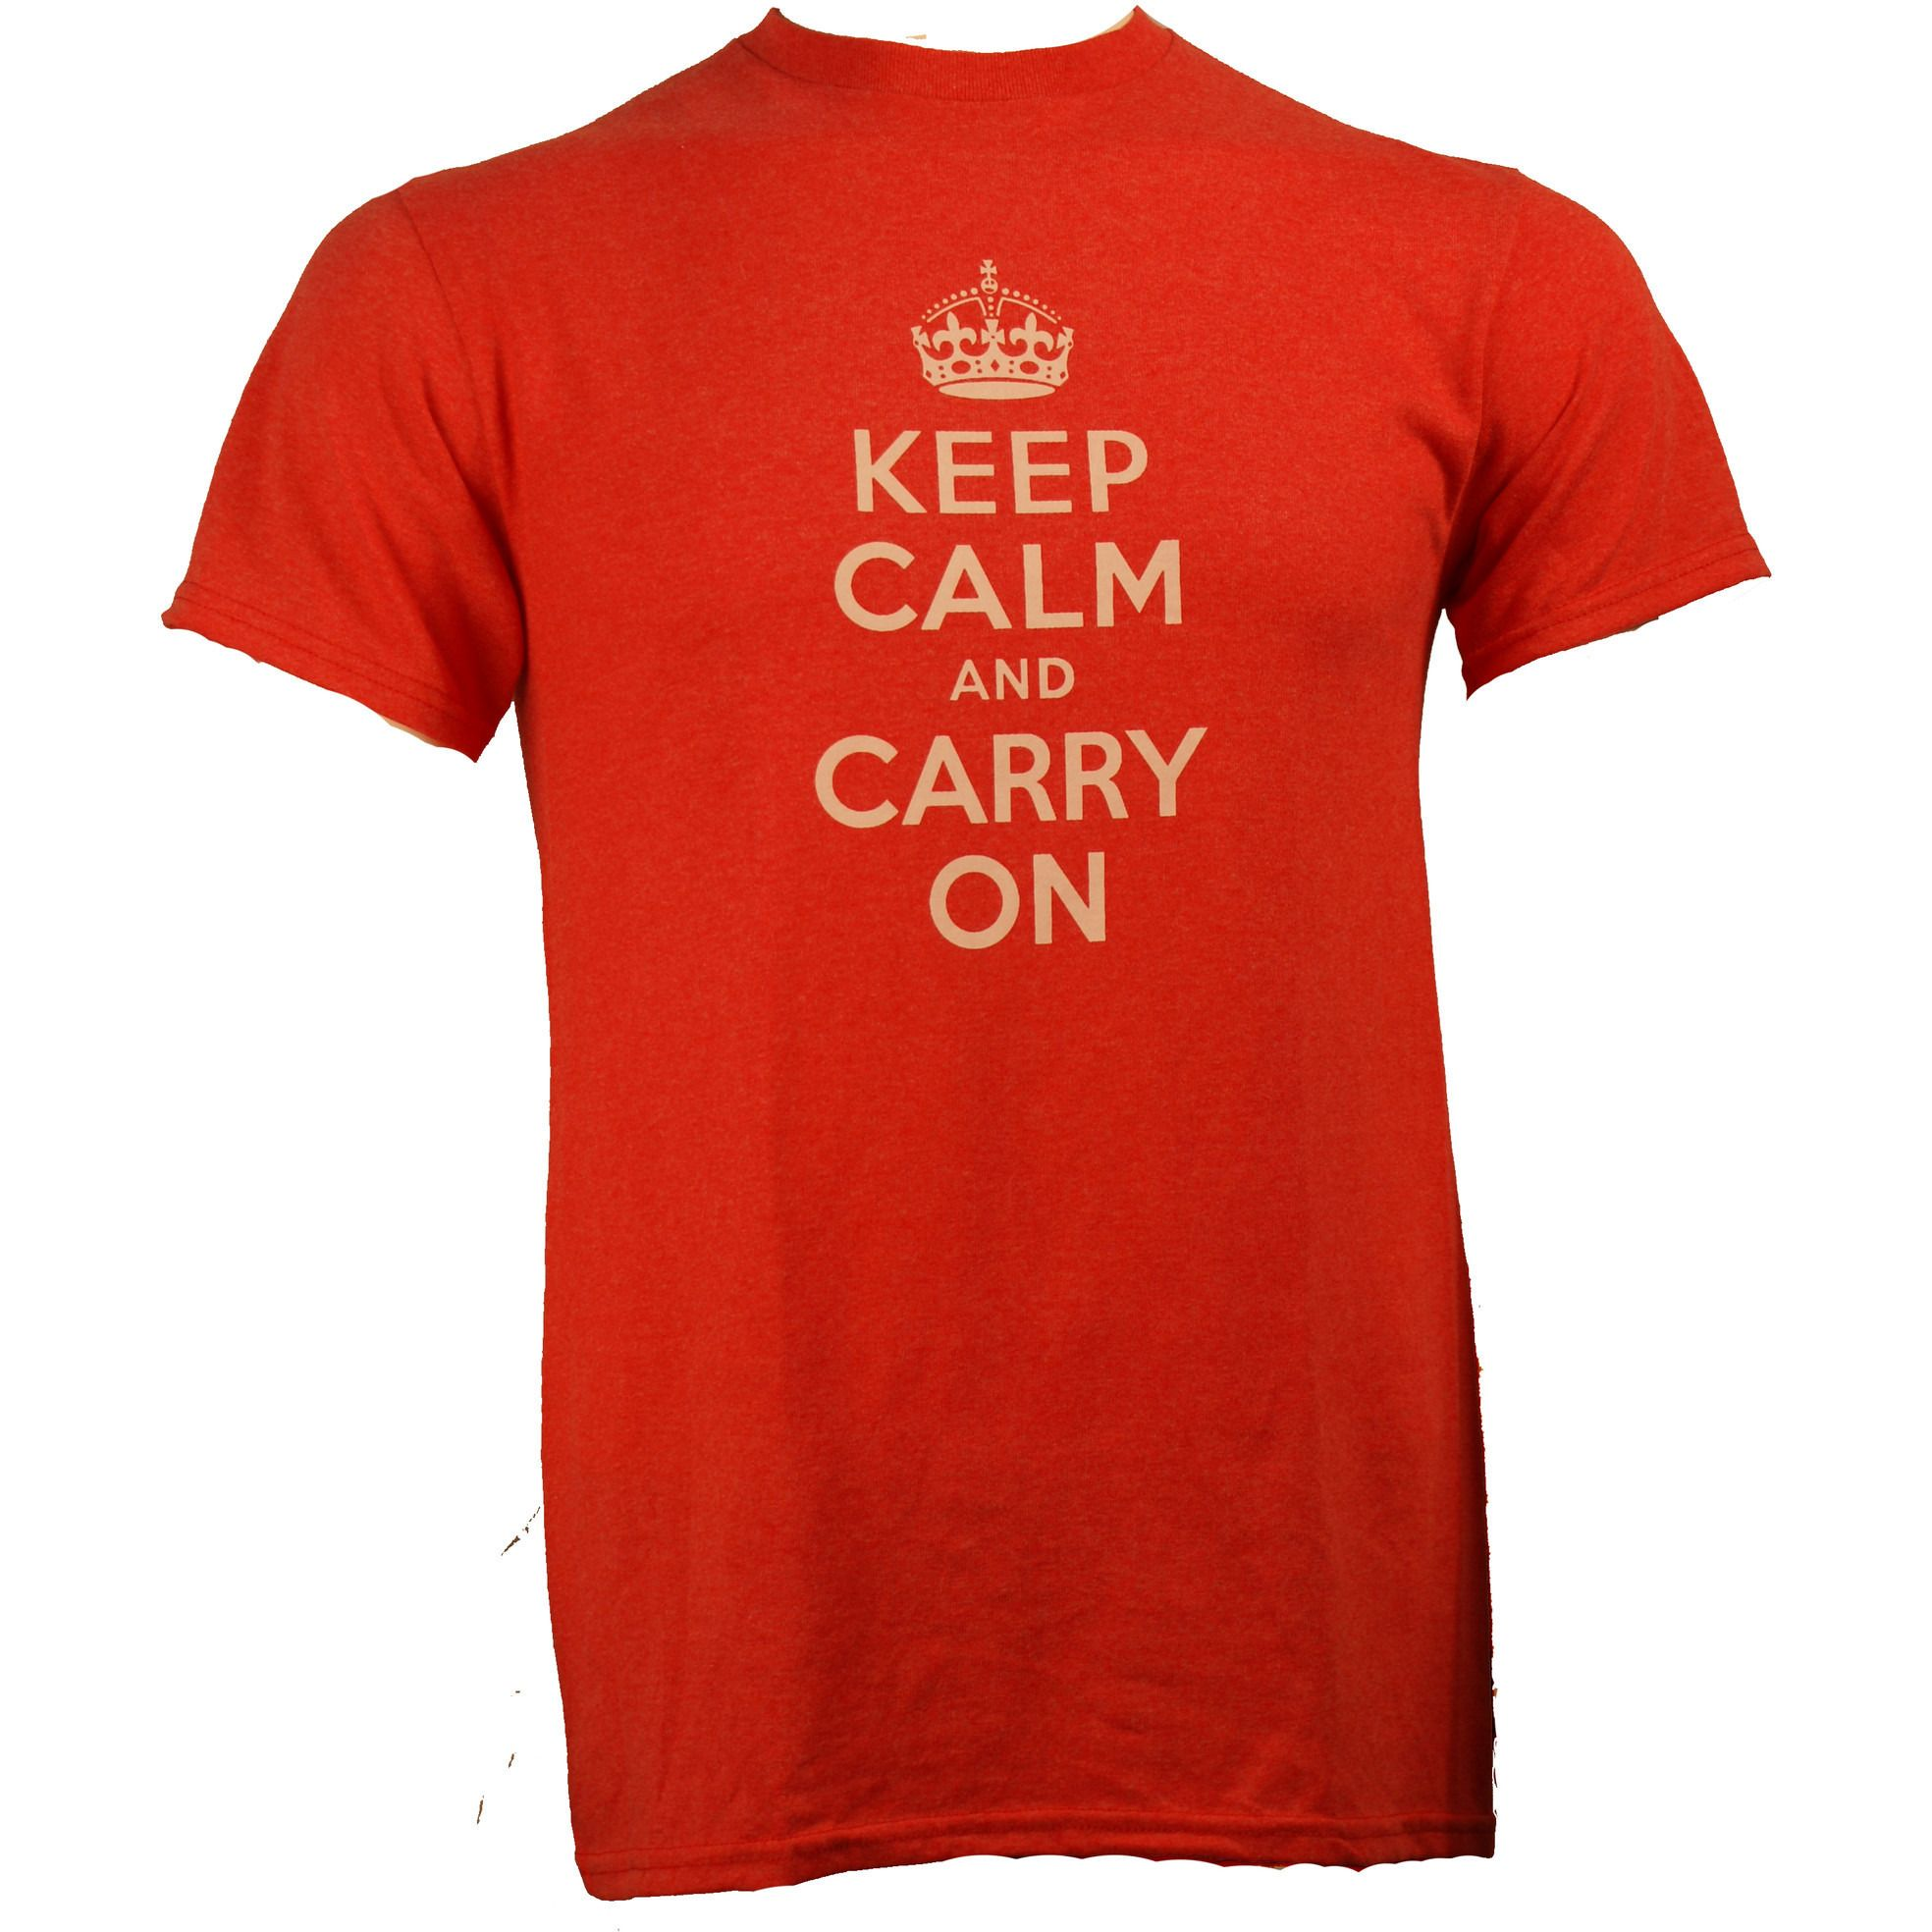 Keep Calm and Carry on Red Shirt Uncanny!